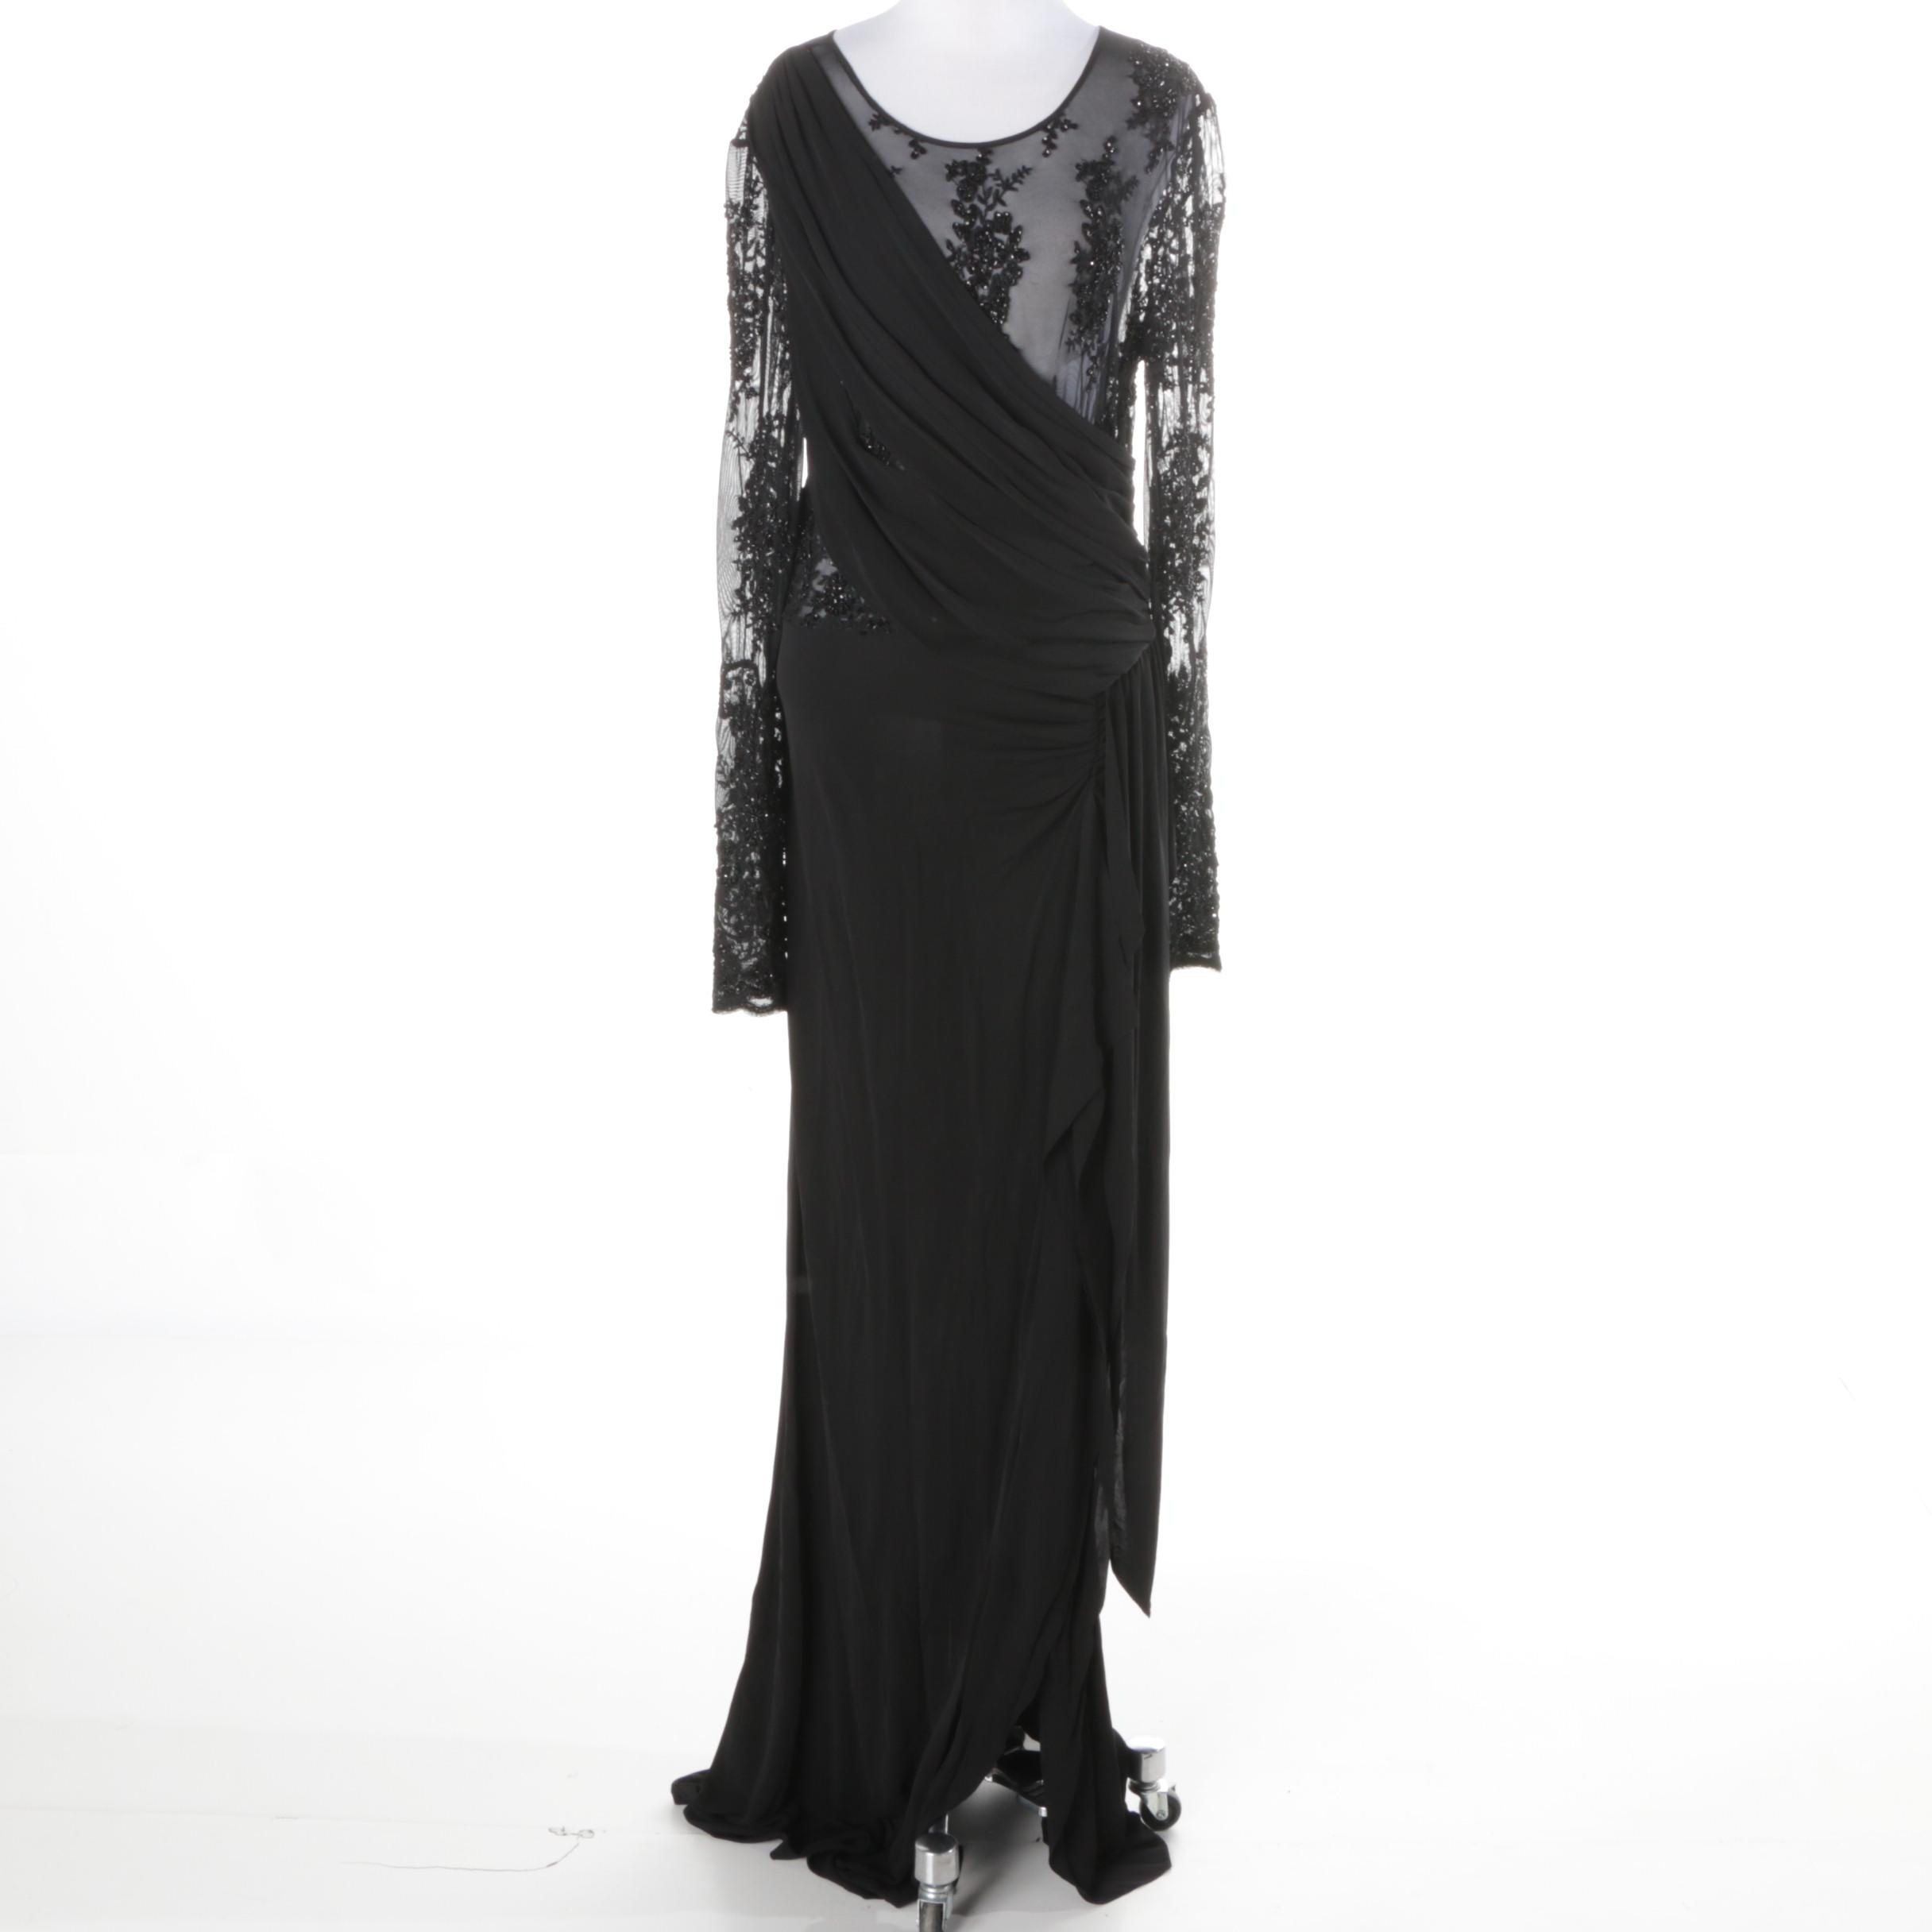 ABS Allen Swartz Embellished Black Evening Dress with Lace